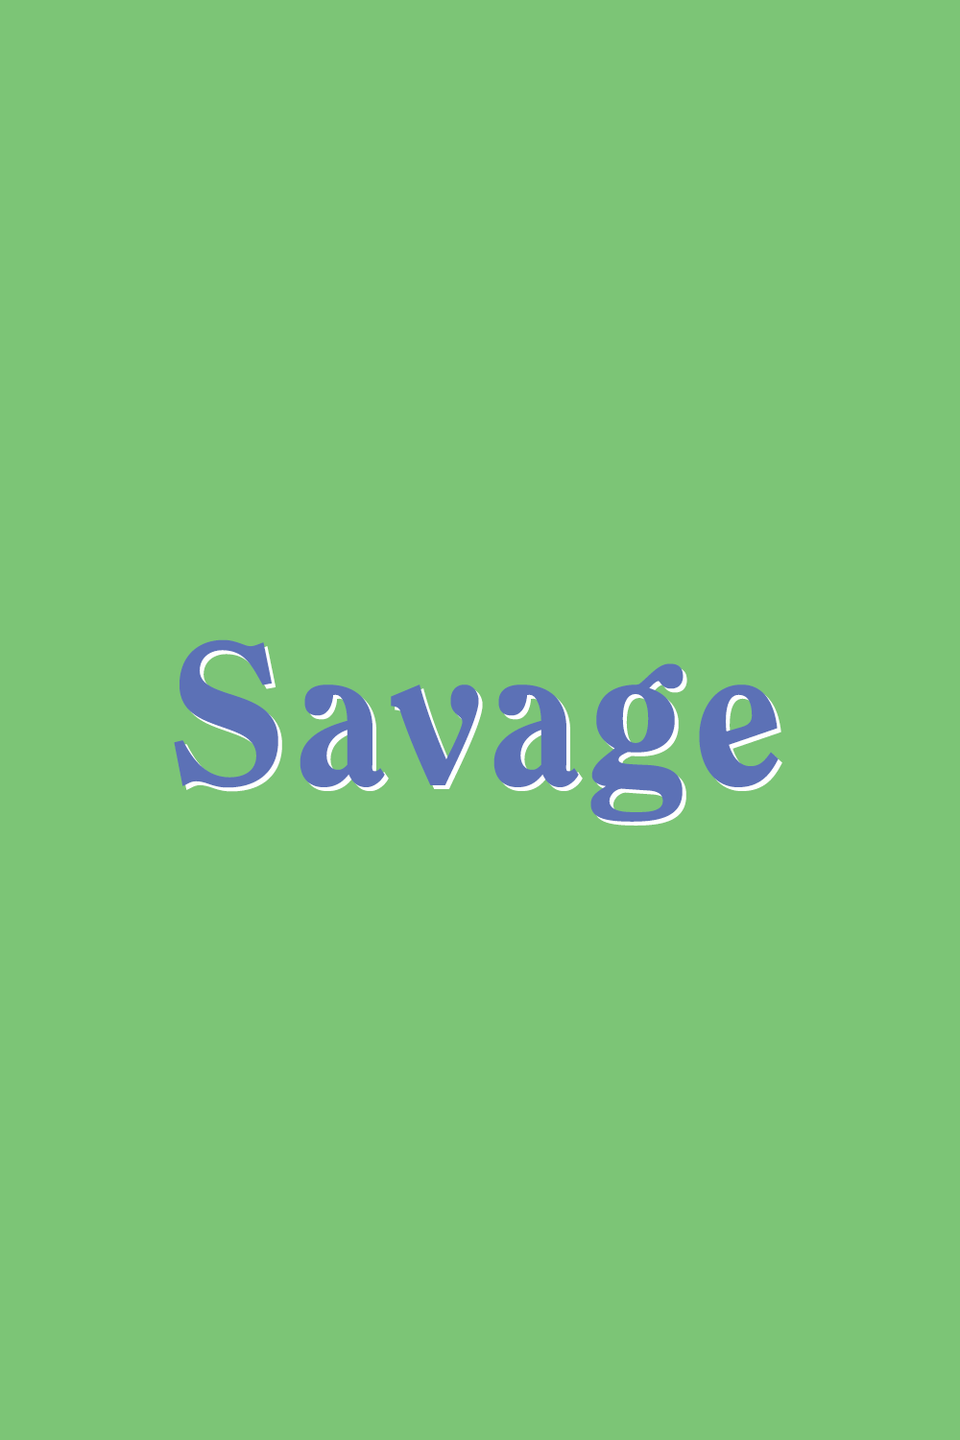 "<p>To perform a savage act is to do so unapologetically. This word is used as internet slang when describing a shocking event or a careless attitude. Used in a sentence: ""Did you see how Ashley Graham shut down trolls? Savage."" Unfortunately, it was <a href=""https://www.theatlantic.com/entertainment/archive/2014/06/a-linguist-on-why-redskin-is-racist-patent-overturned/373198/"" rel=""nofollow noopener"" target=""_blank"" data-ylk=""slk:initially introduced"" class=""link rapid-noclick-resp"">initially introduced</a> as a derogatory way of describing Native Americans. </p>"